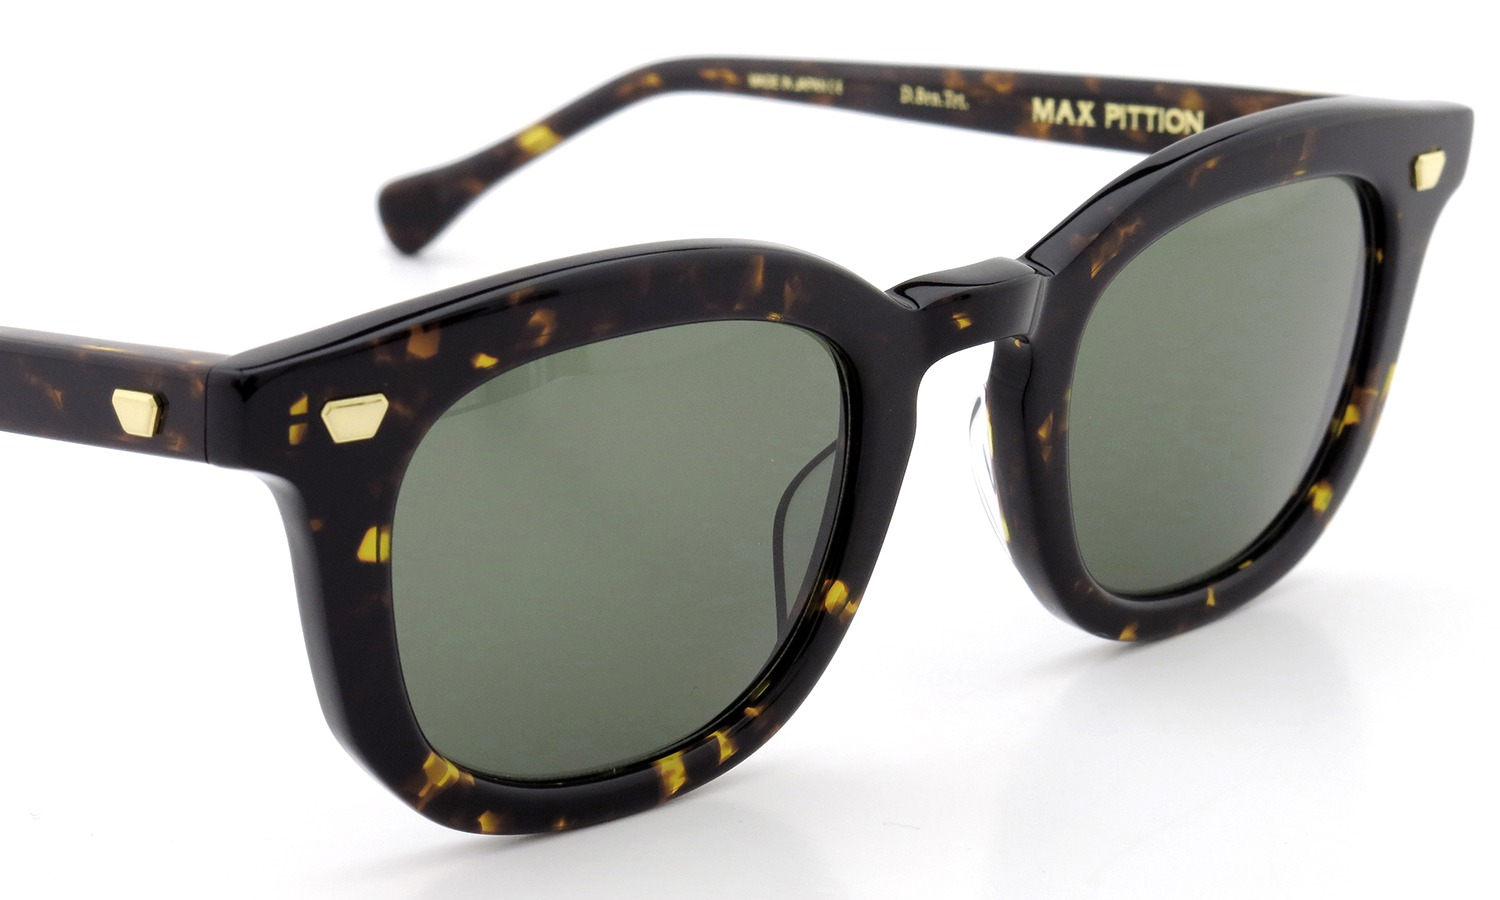 MAX PITTION サングラス [MAP COLLECTION] Livingston 47size D.Brn.Trt. Lense:G15